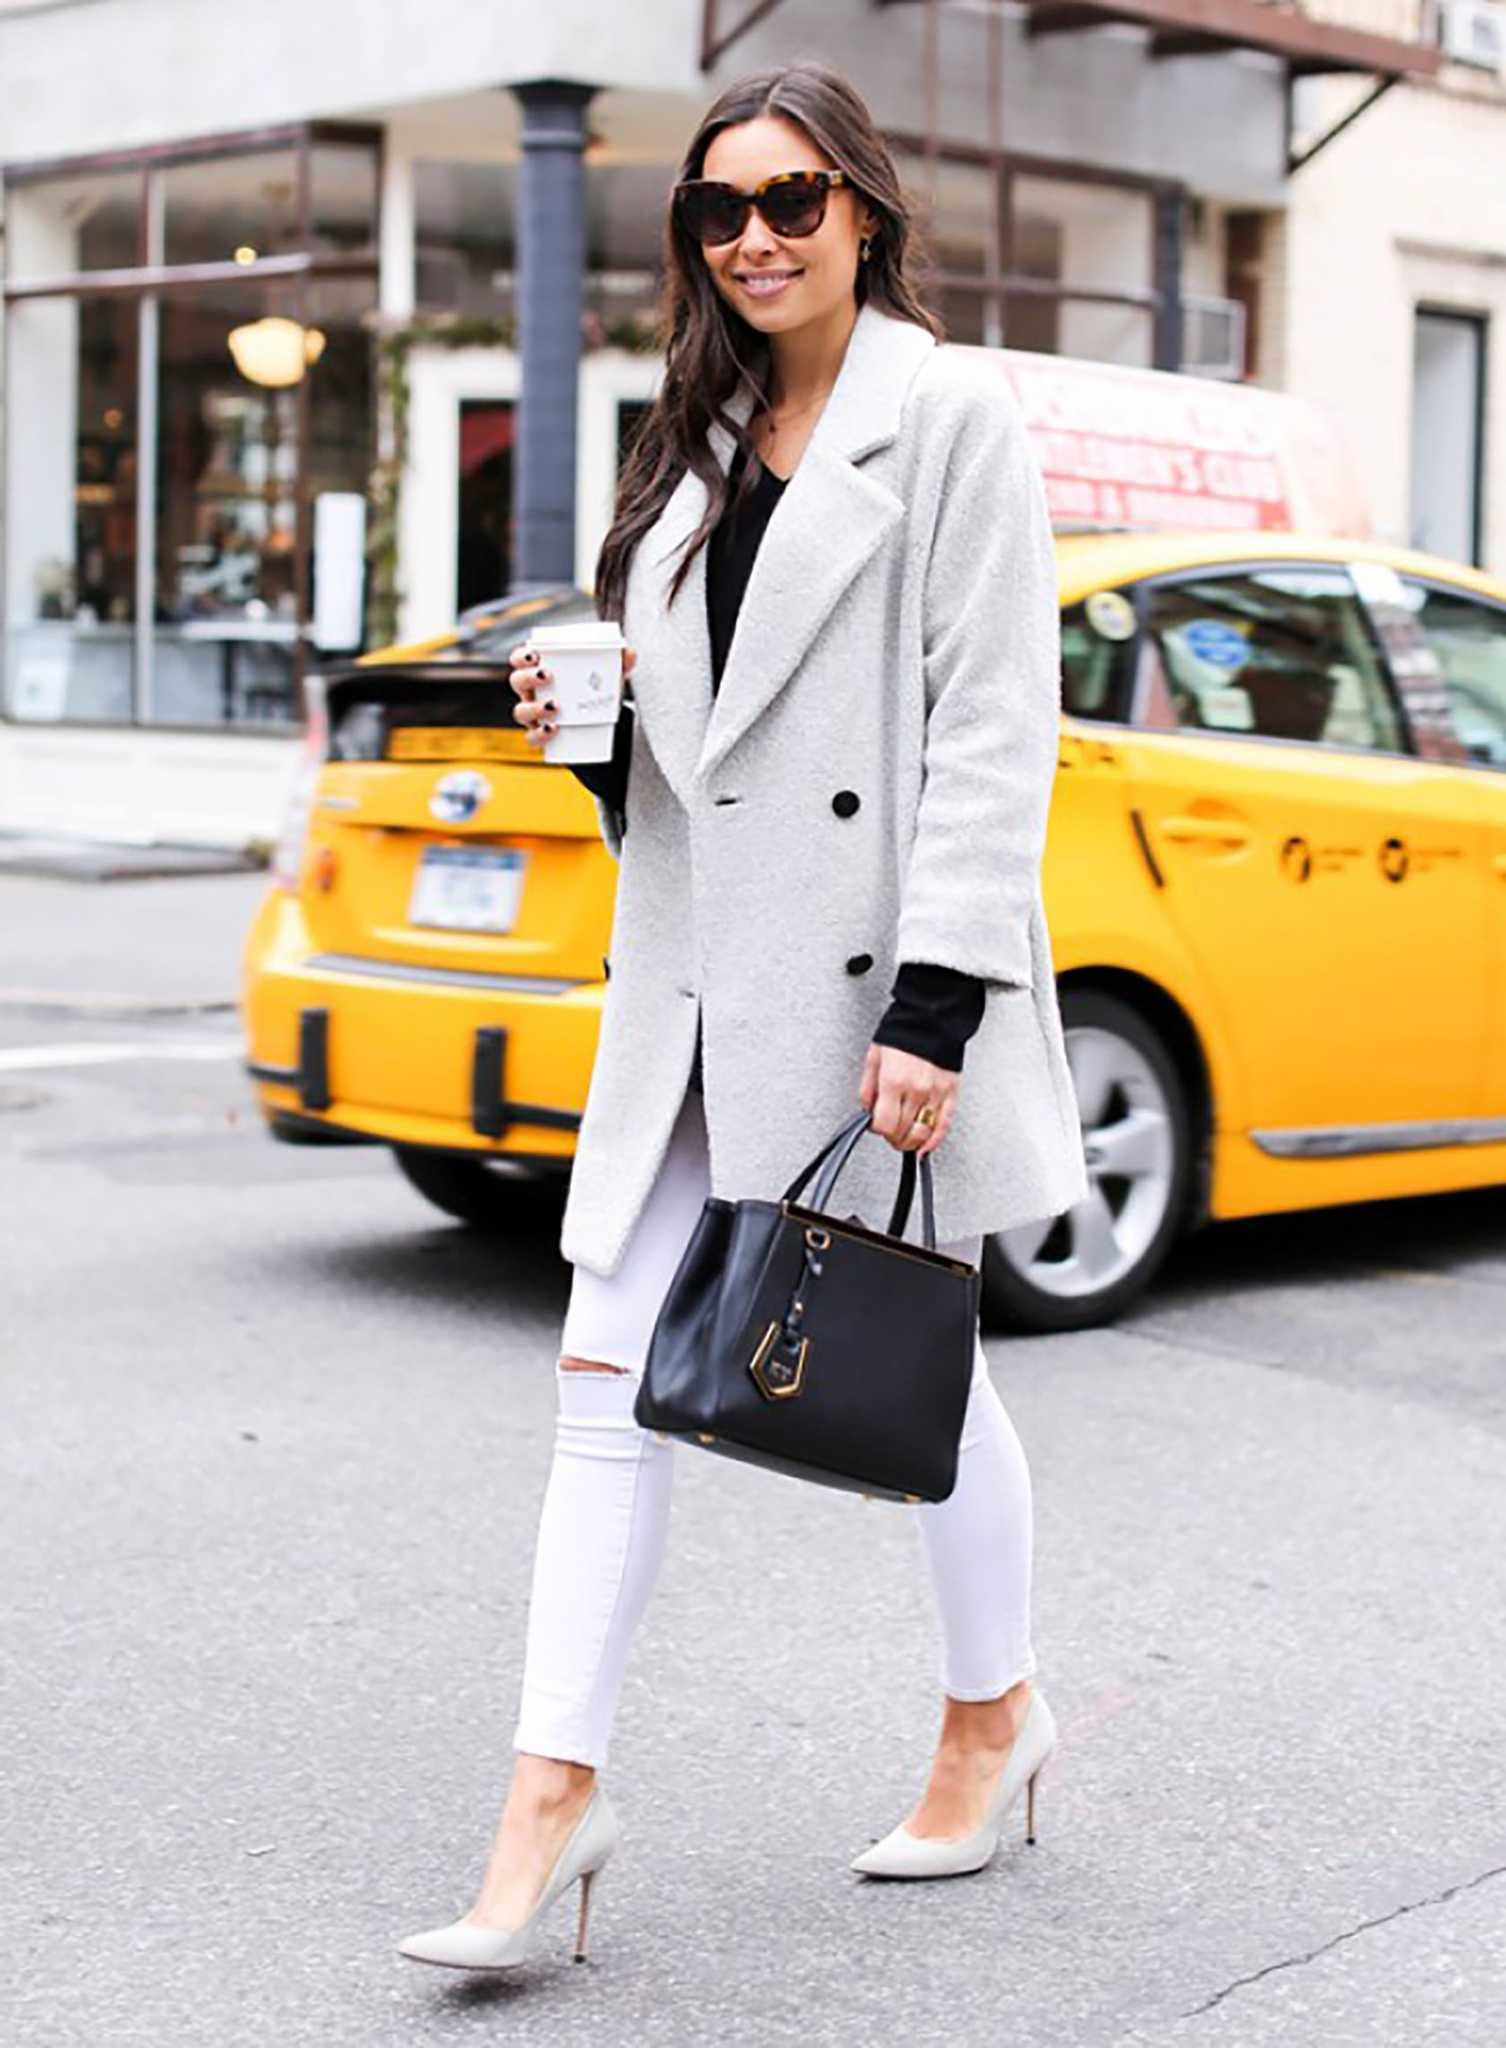 Coat with denims - White Jeans Outfit Ideas